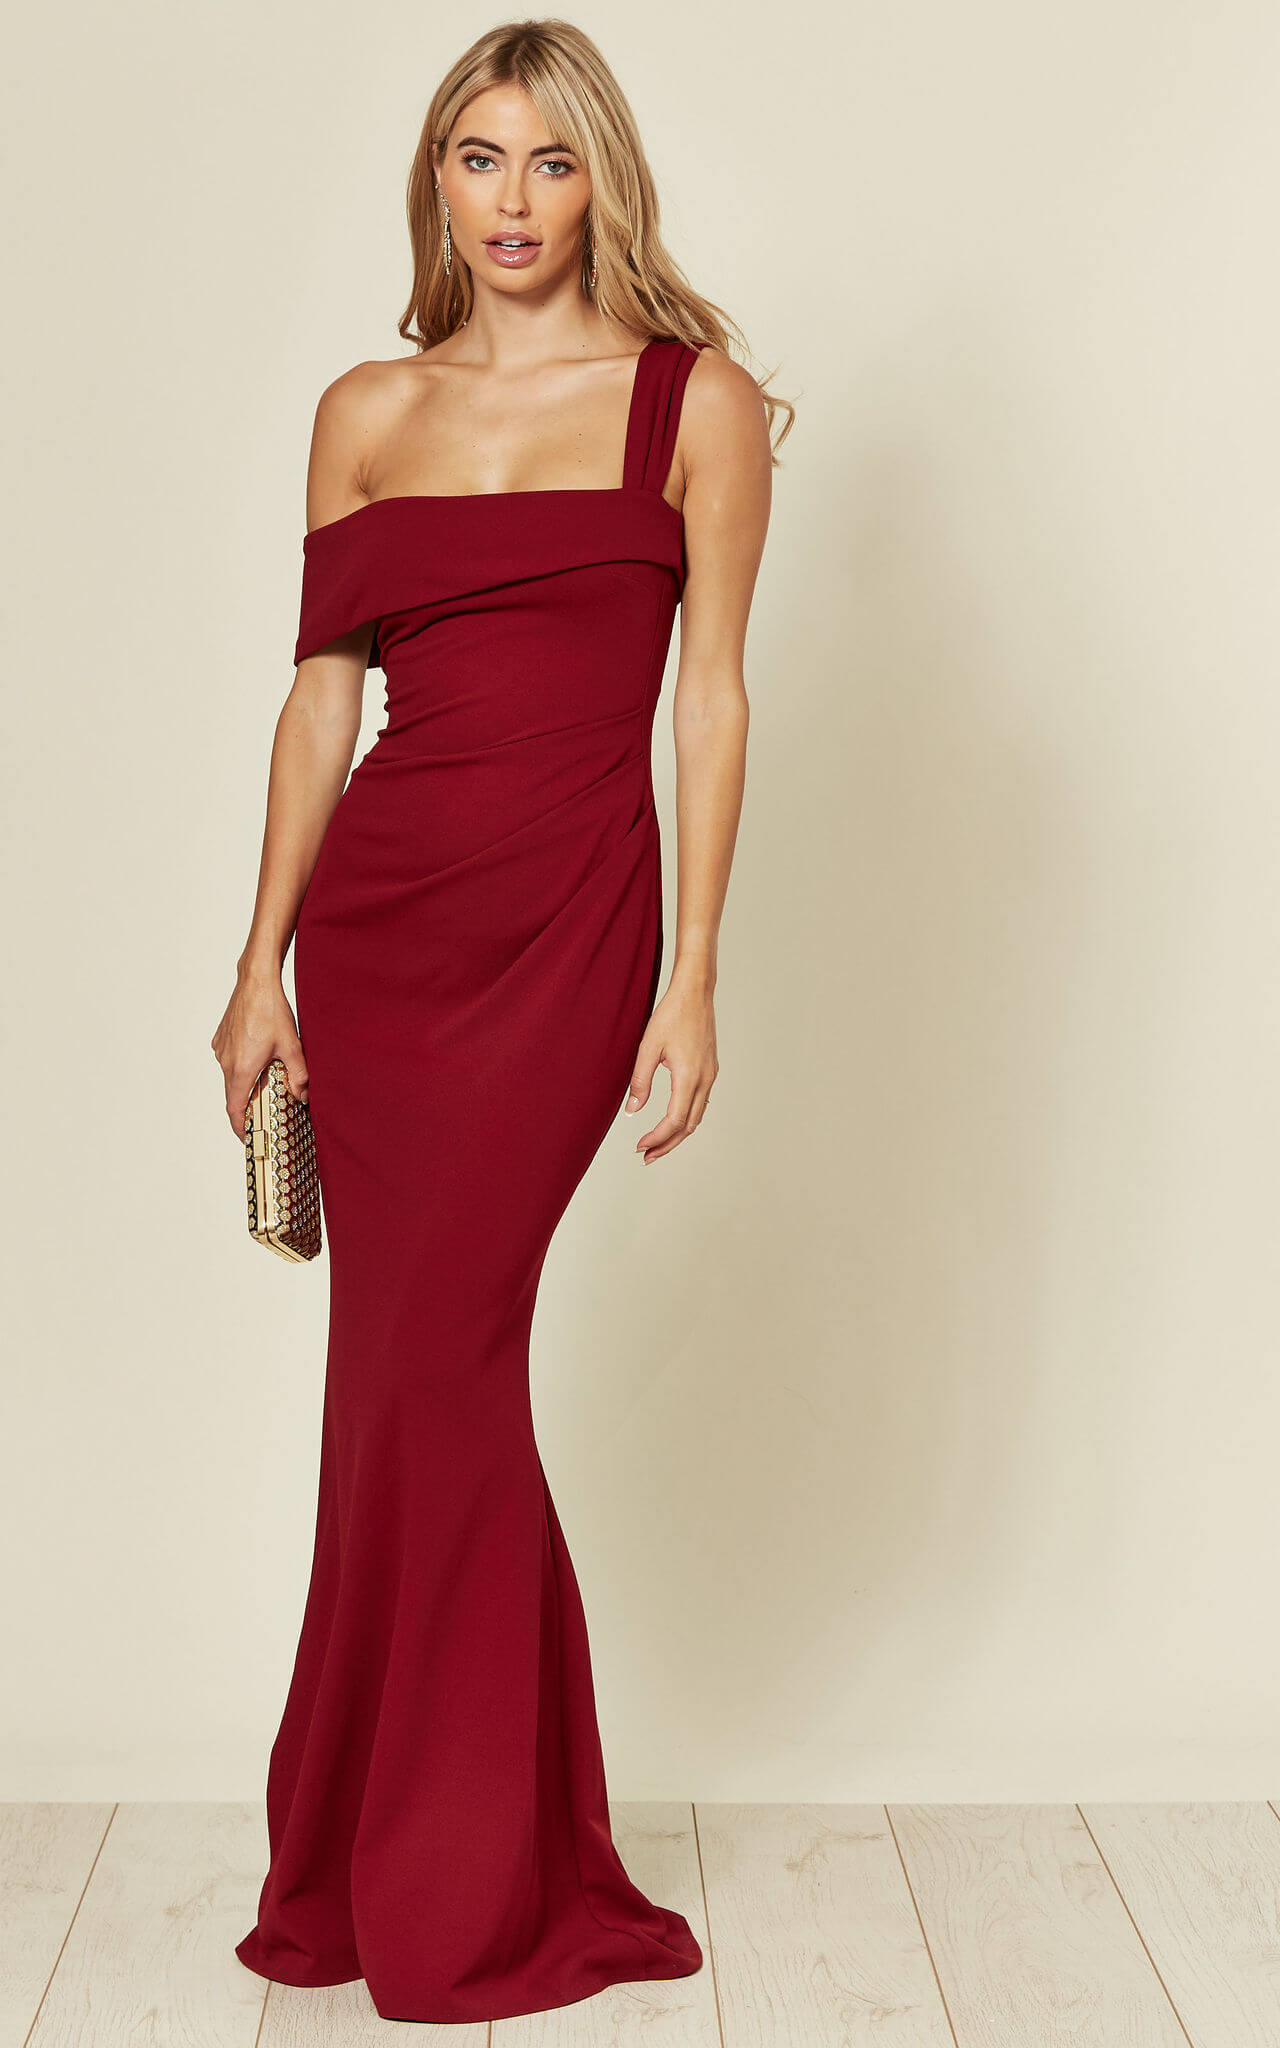 Model wears an off the shoulder maxi dress in red